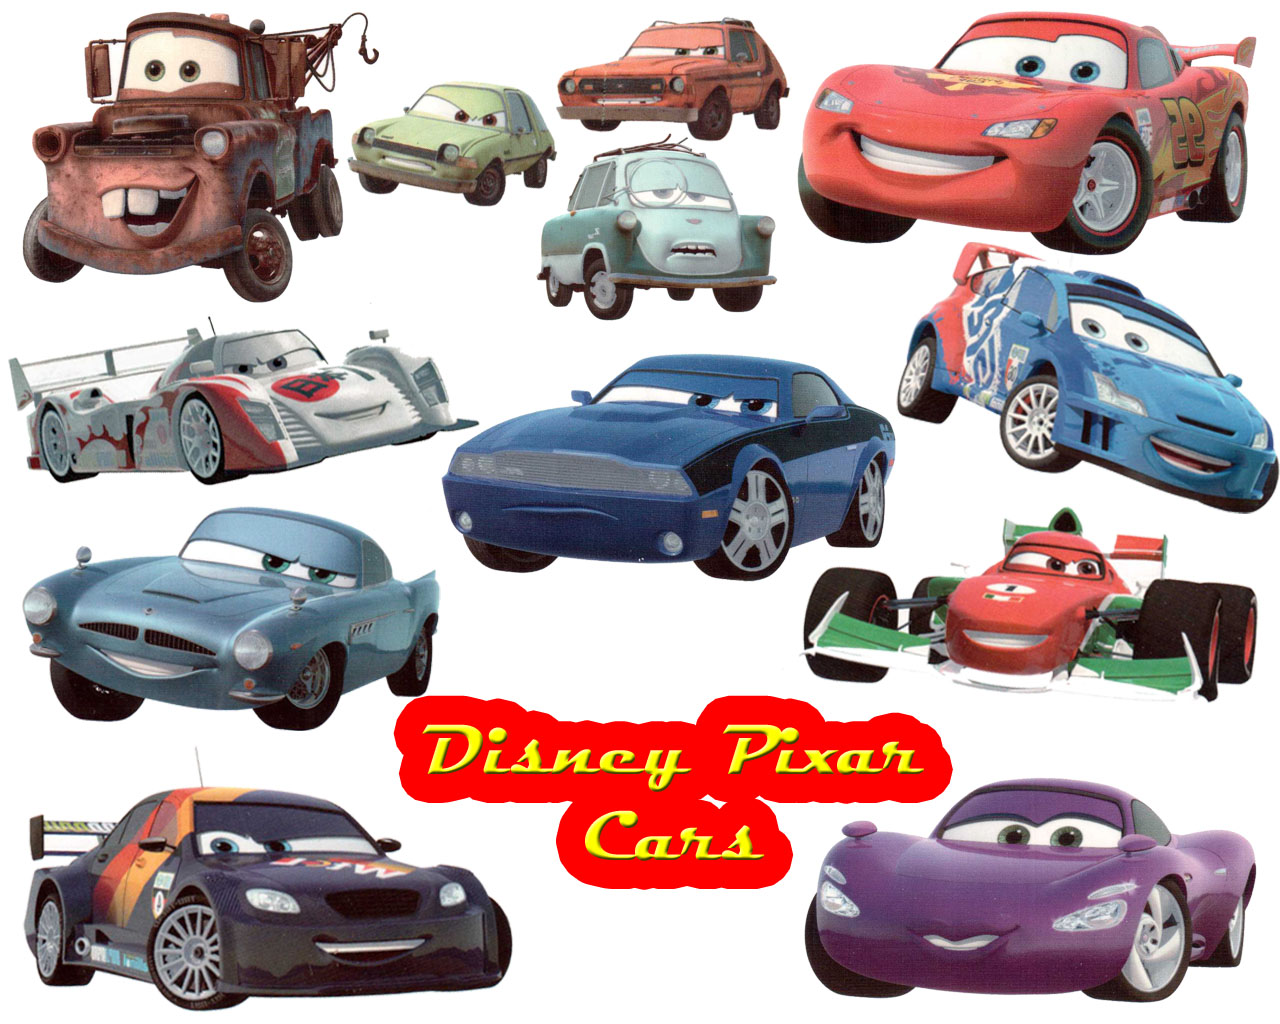 Disney Pixar Cars Favourites Desktop Wallpaper Wallpaper Anime 48252 1280x1024